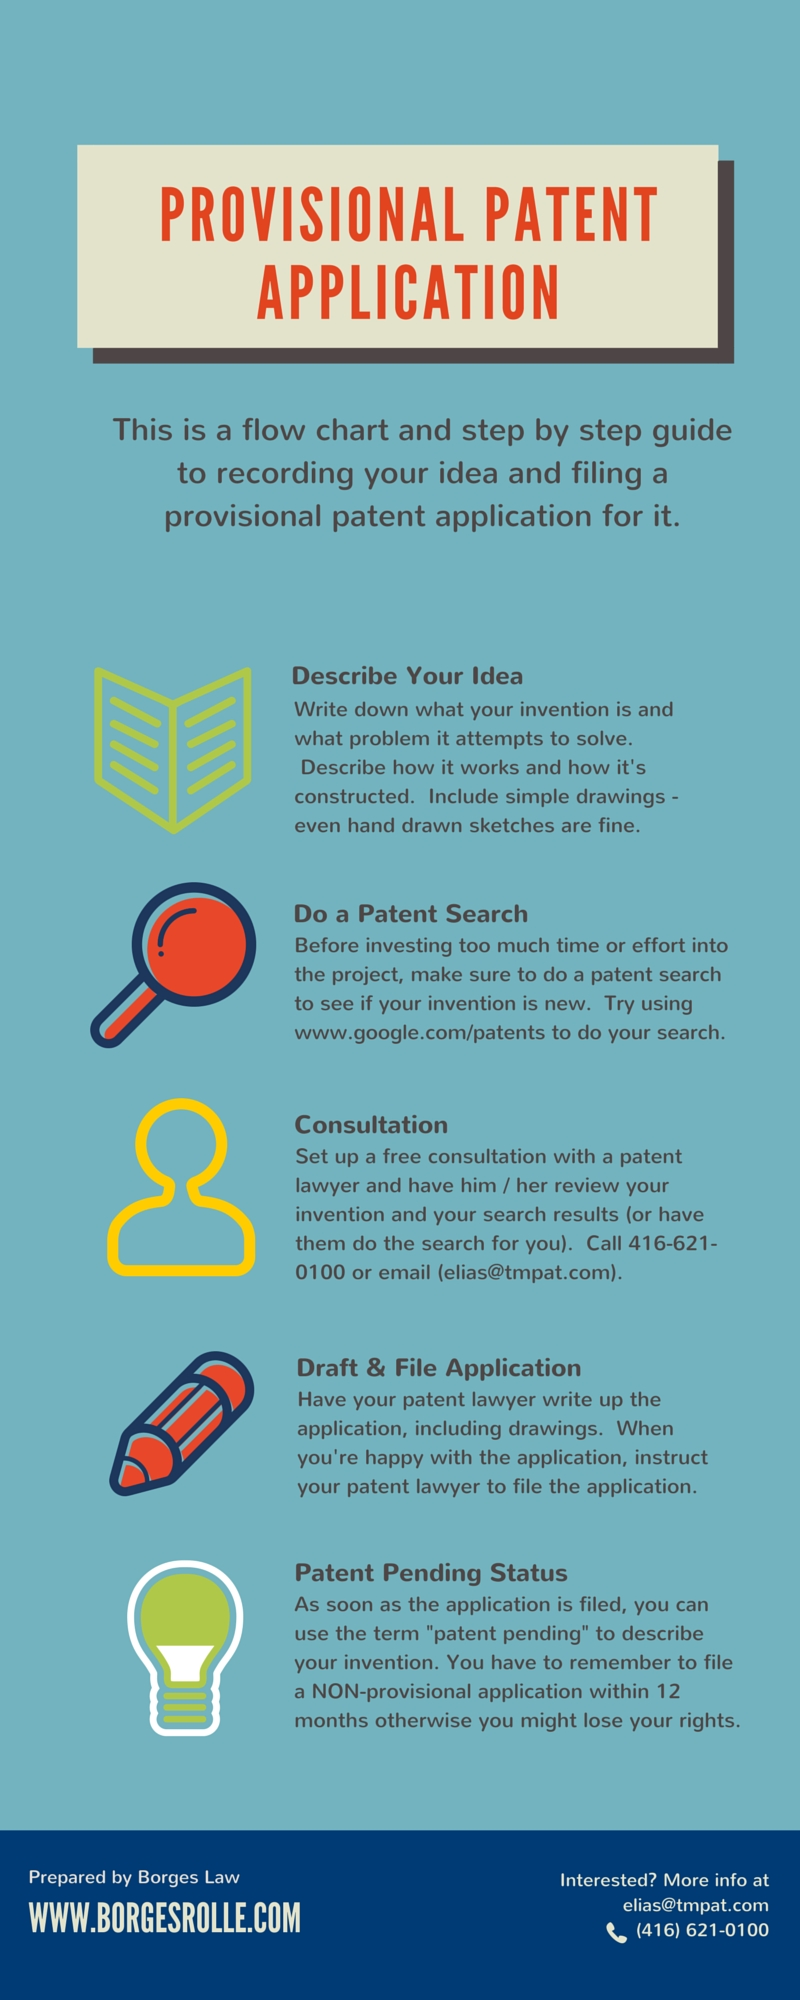 10 Amazing How To Patent A Idea provisional patent application how to file infographic 12 2020